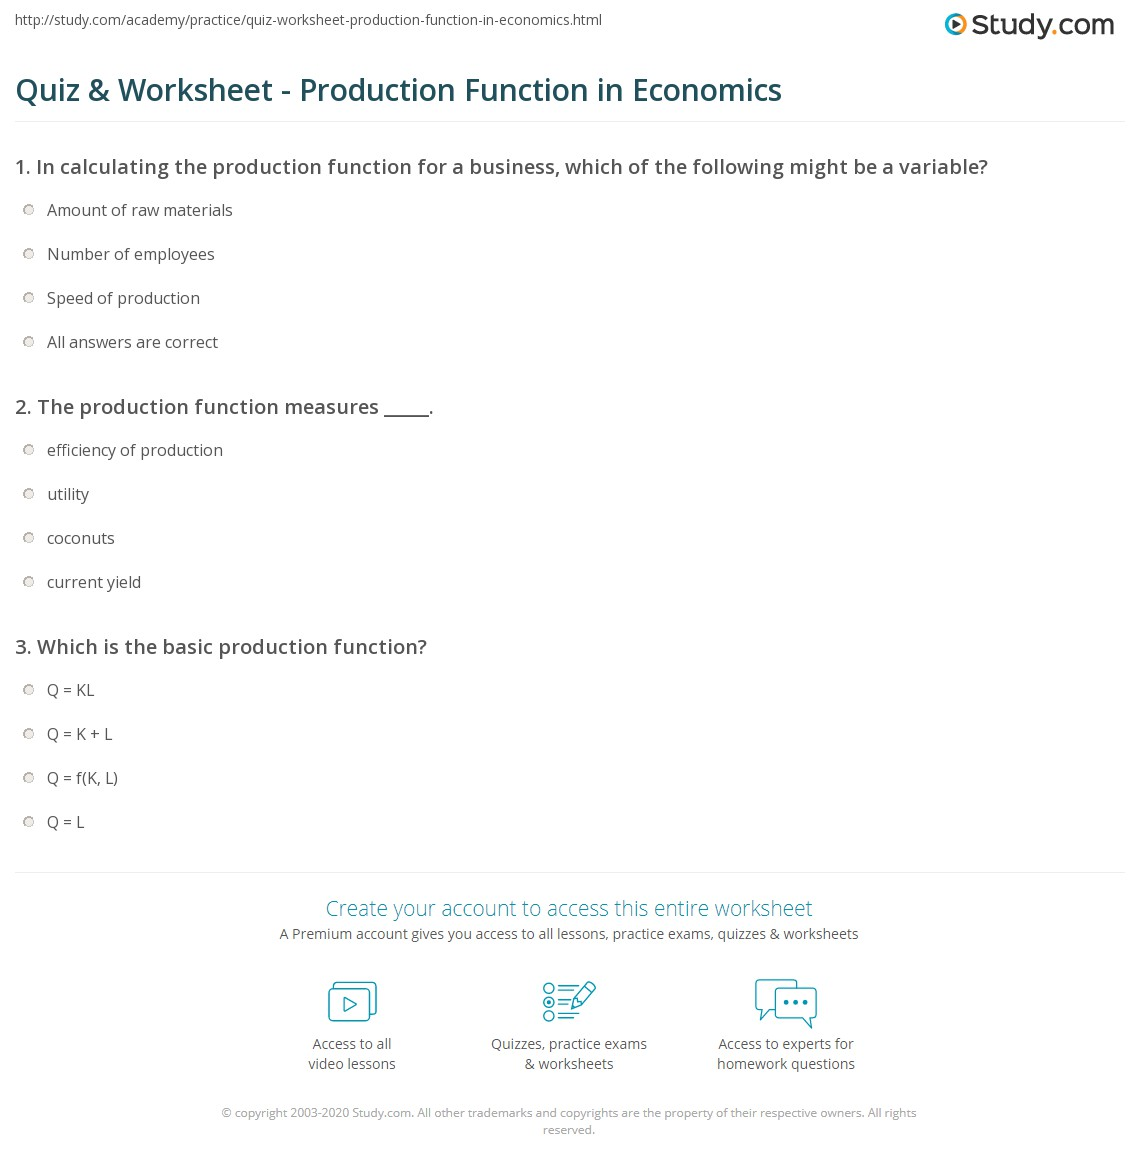 Print Production Function in Economics: Definition, Formula & Example  Worksheet